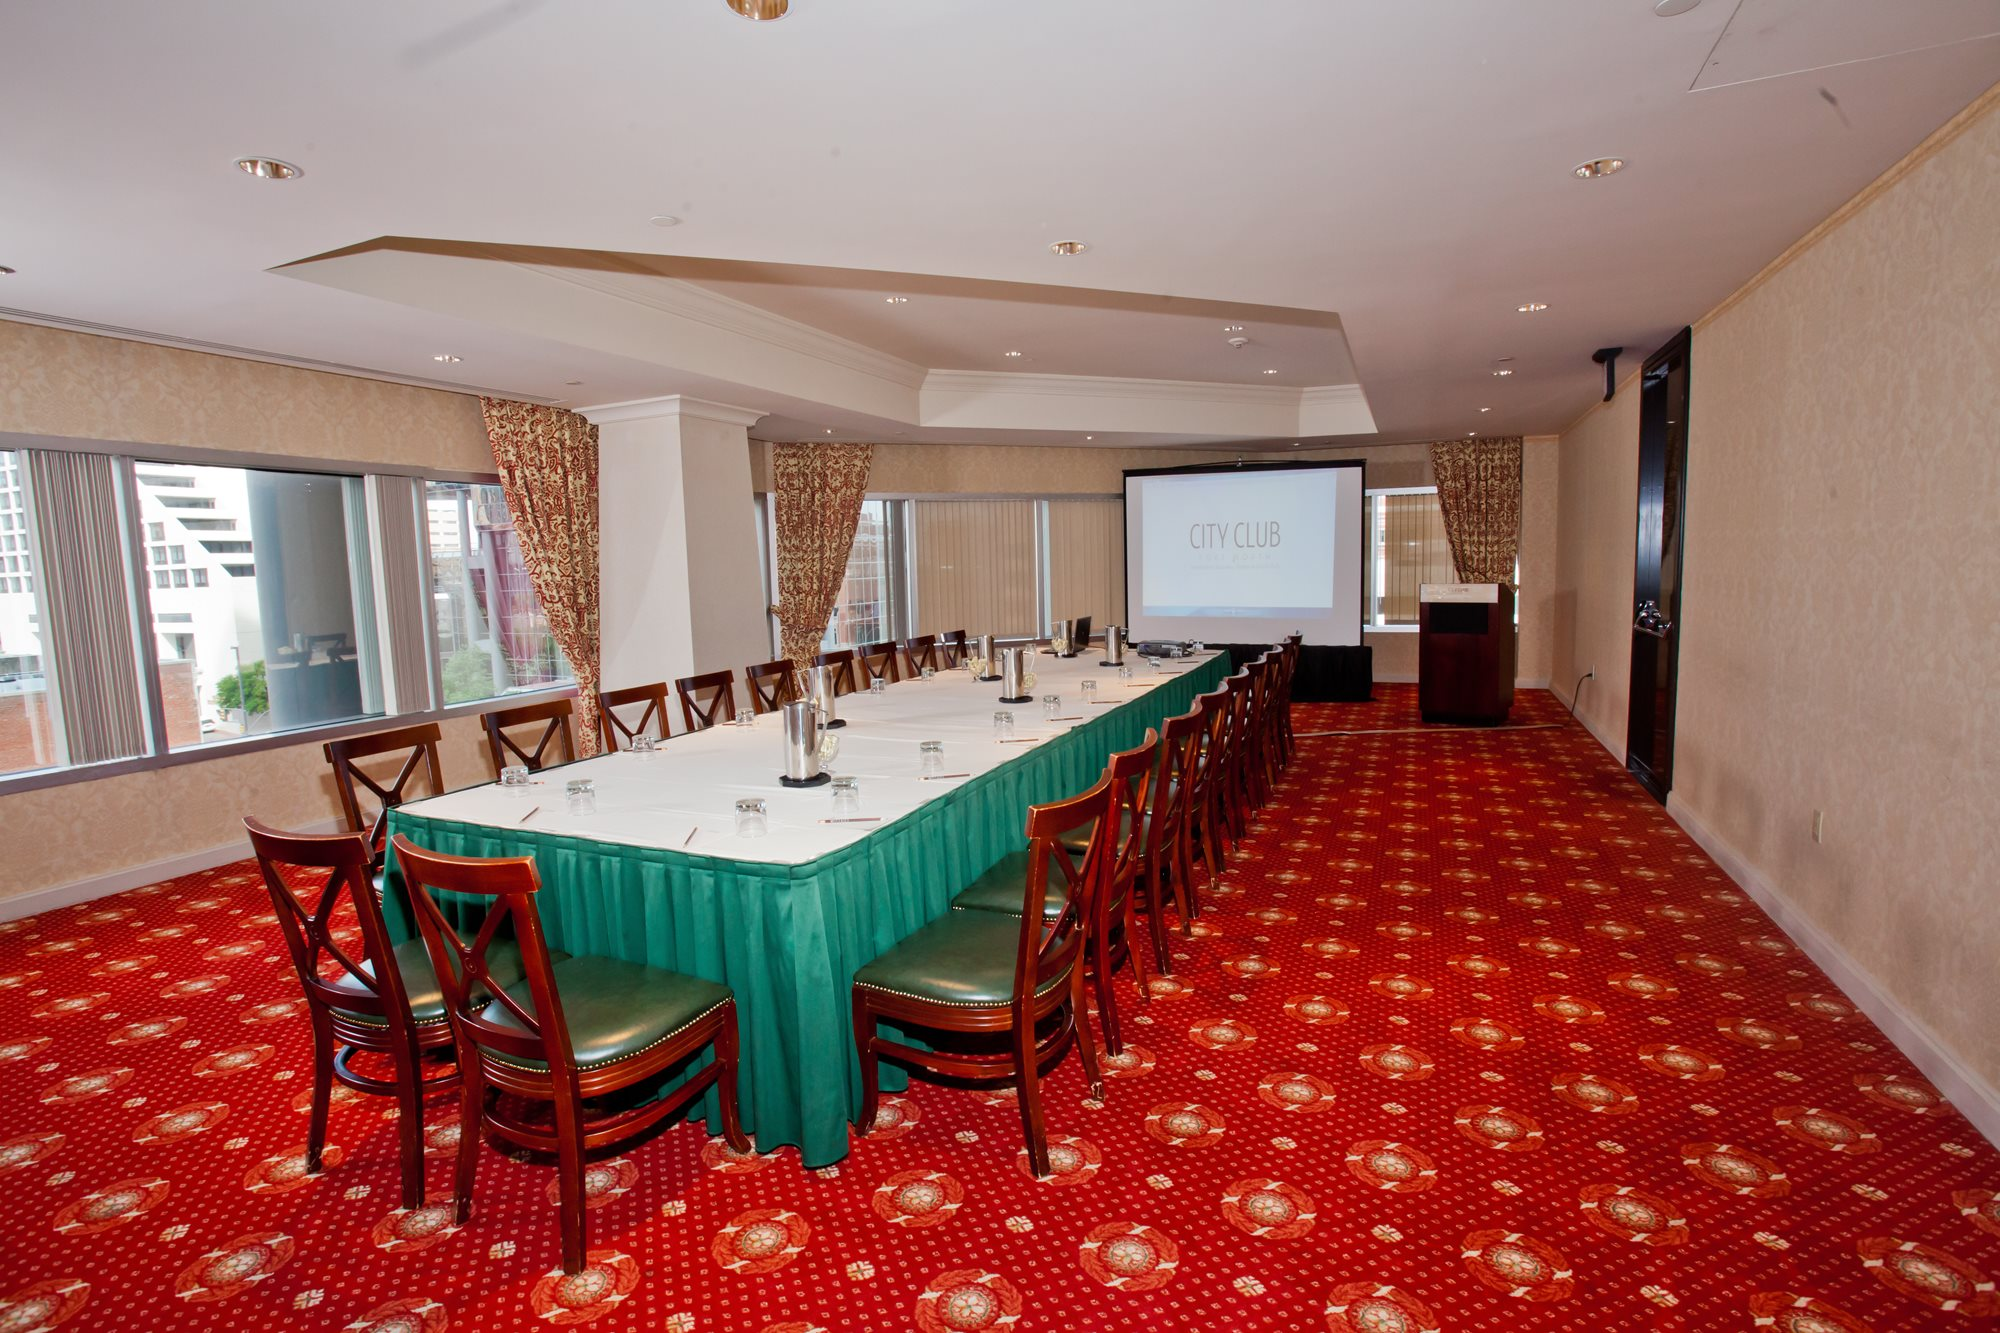 Governors_Room_-_Conference_Style